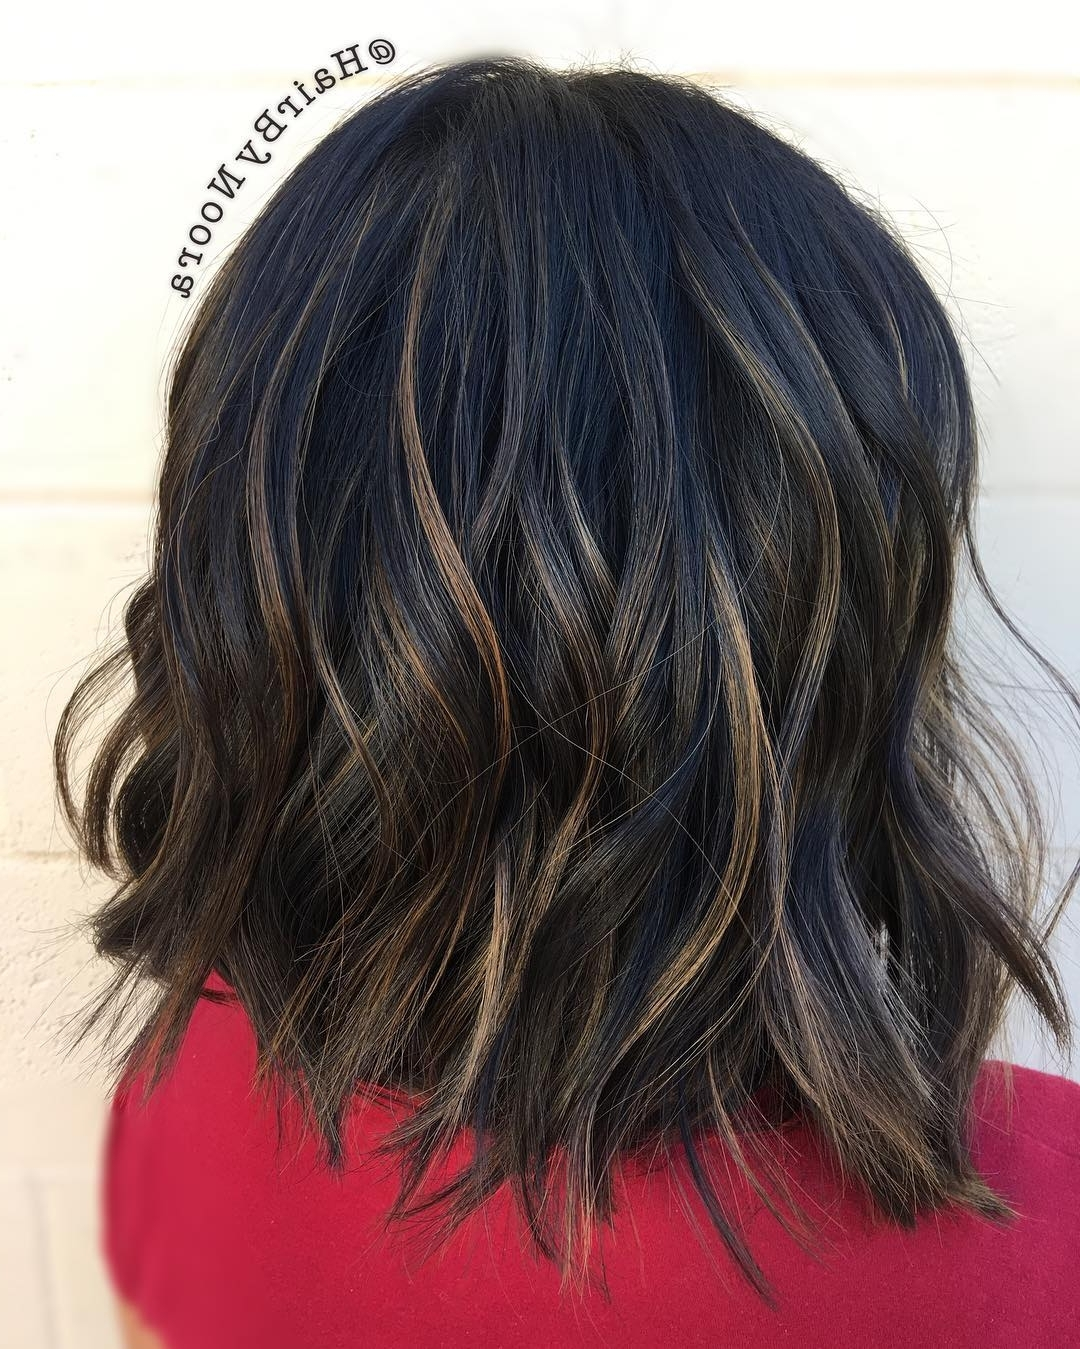 60 Medium Length Haircuts And Hairstyles To Pull Off In 2020 30+ Stunning Hairstyles For Medium Hair With Highlights